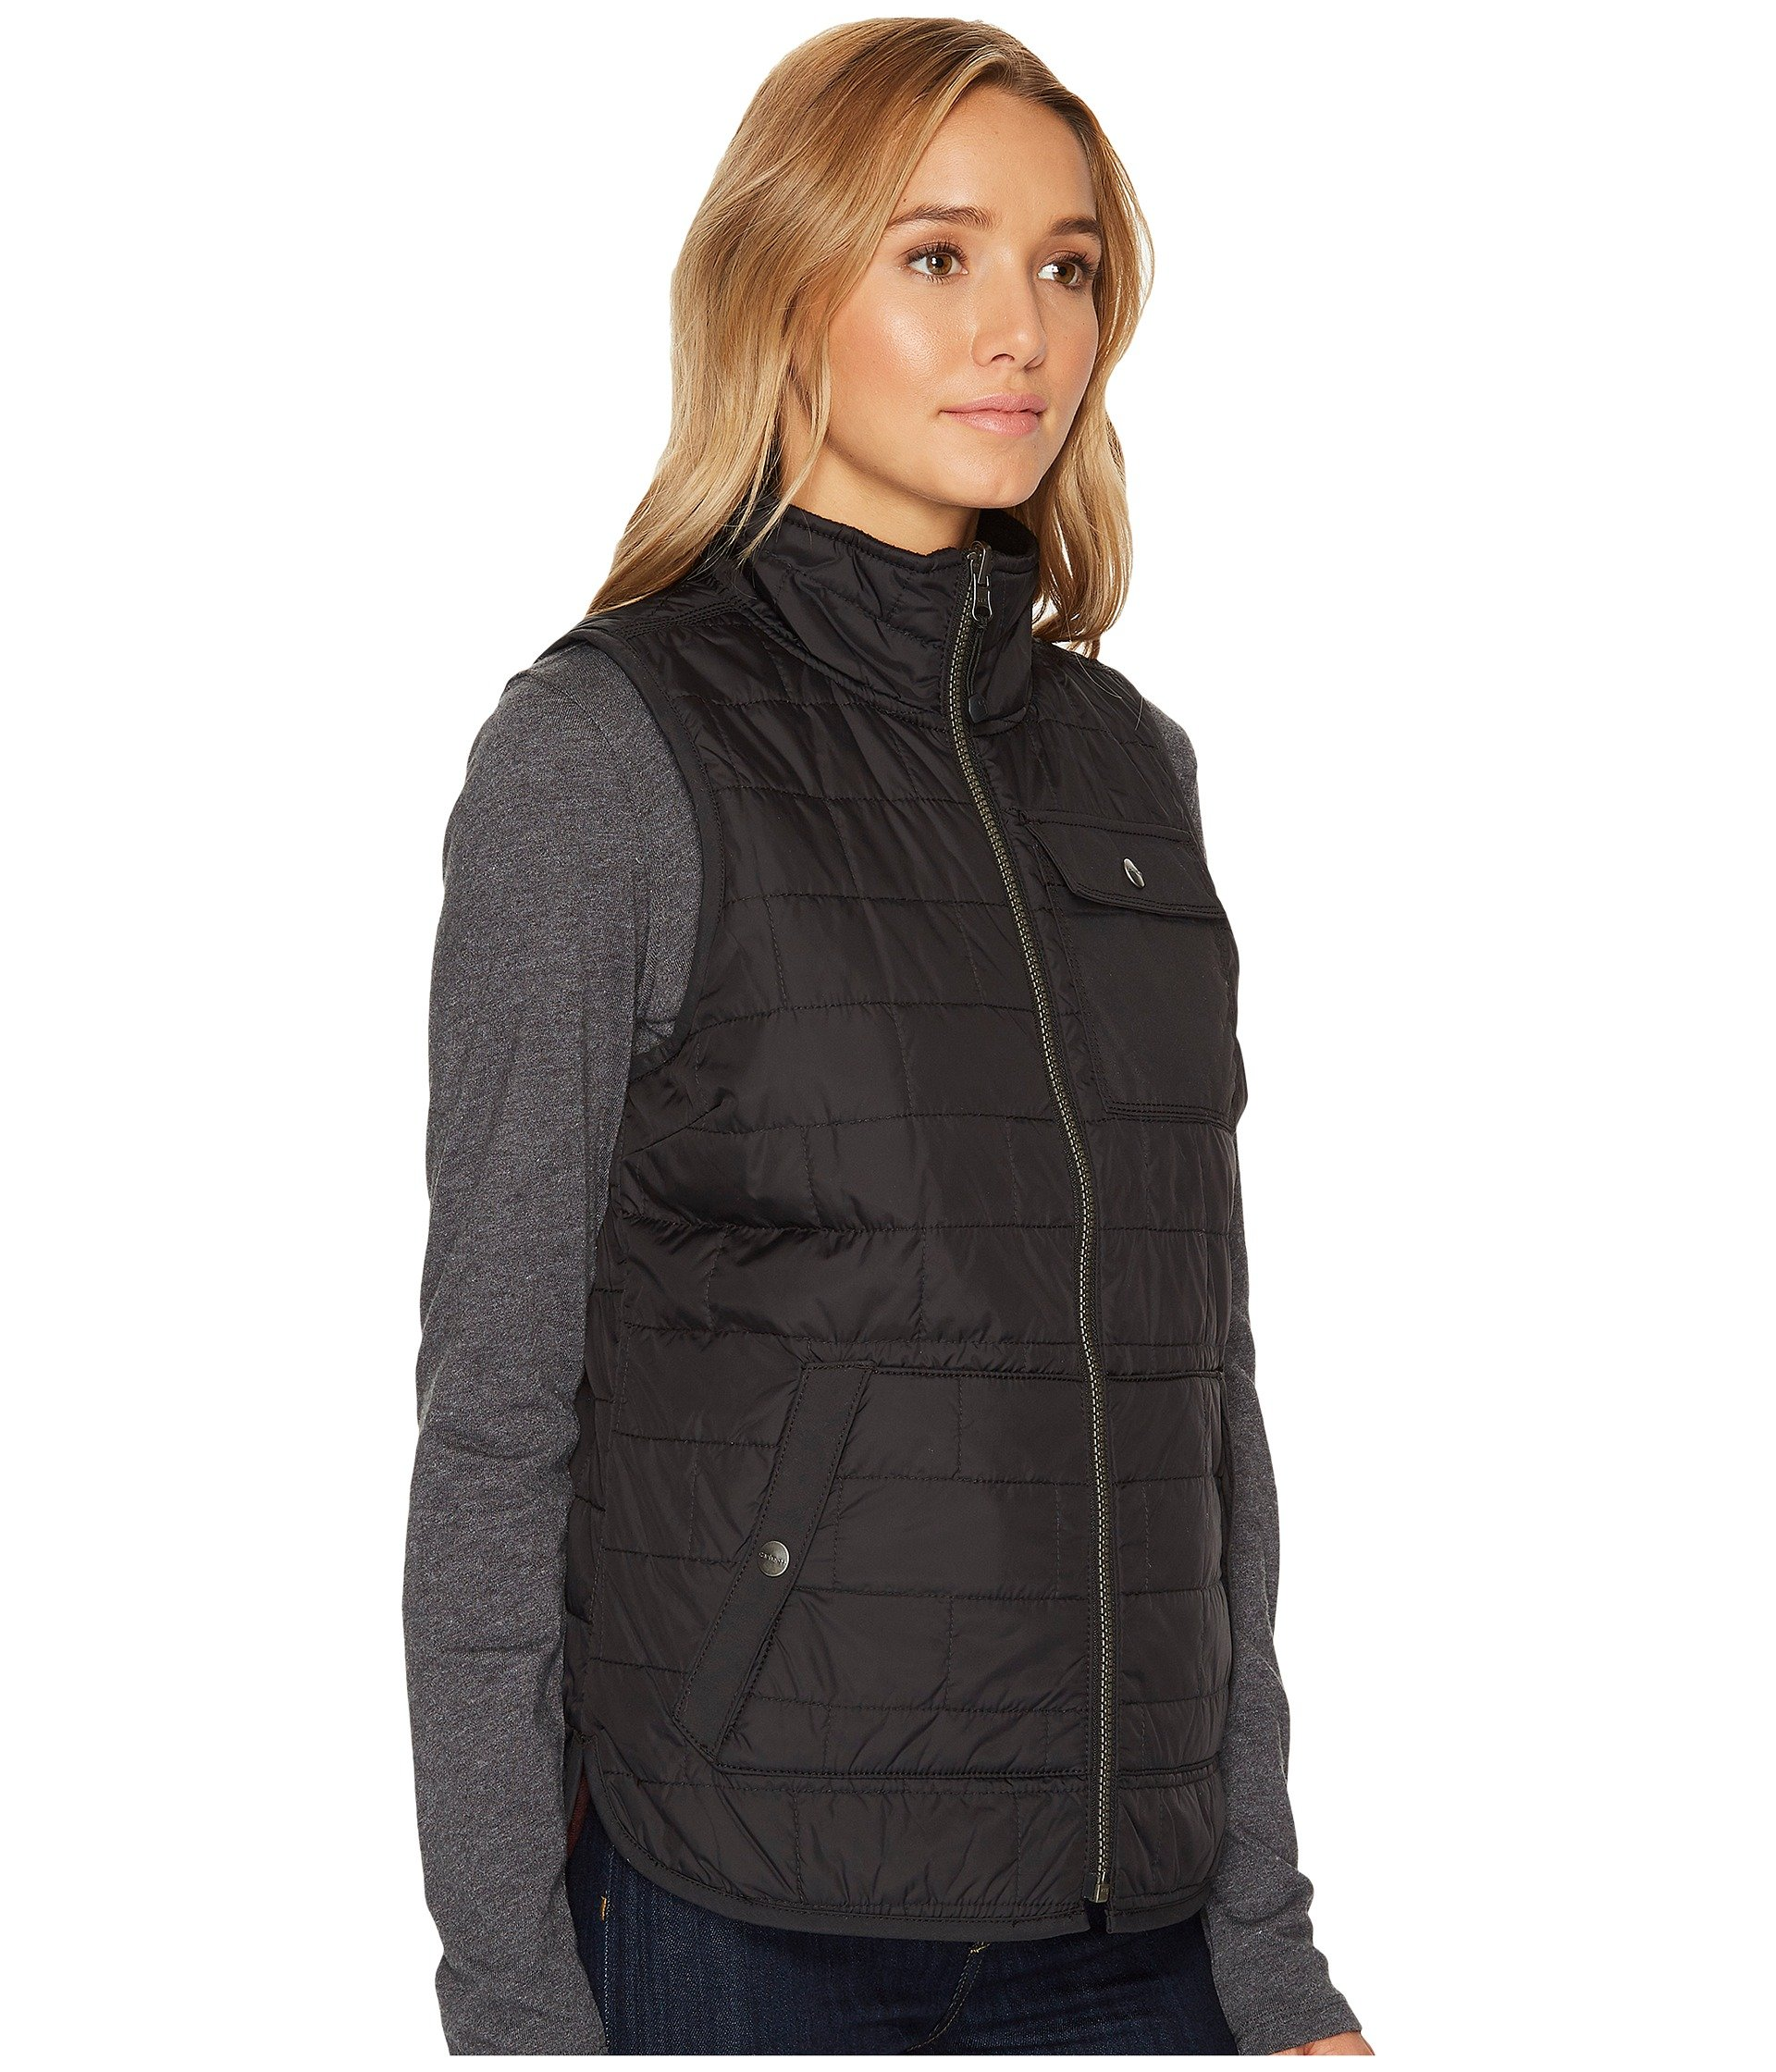 amoret guys Carhartt's women's amoret flannel-lined vest combines toughness, protection and comfort so you can get after that to-do list and turn it into an it's done list quilted cordura®-nylon construction resists abrasion and wear, while triple-stitched main seams ensure durability a durable water .